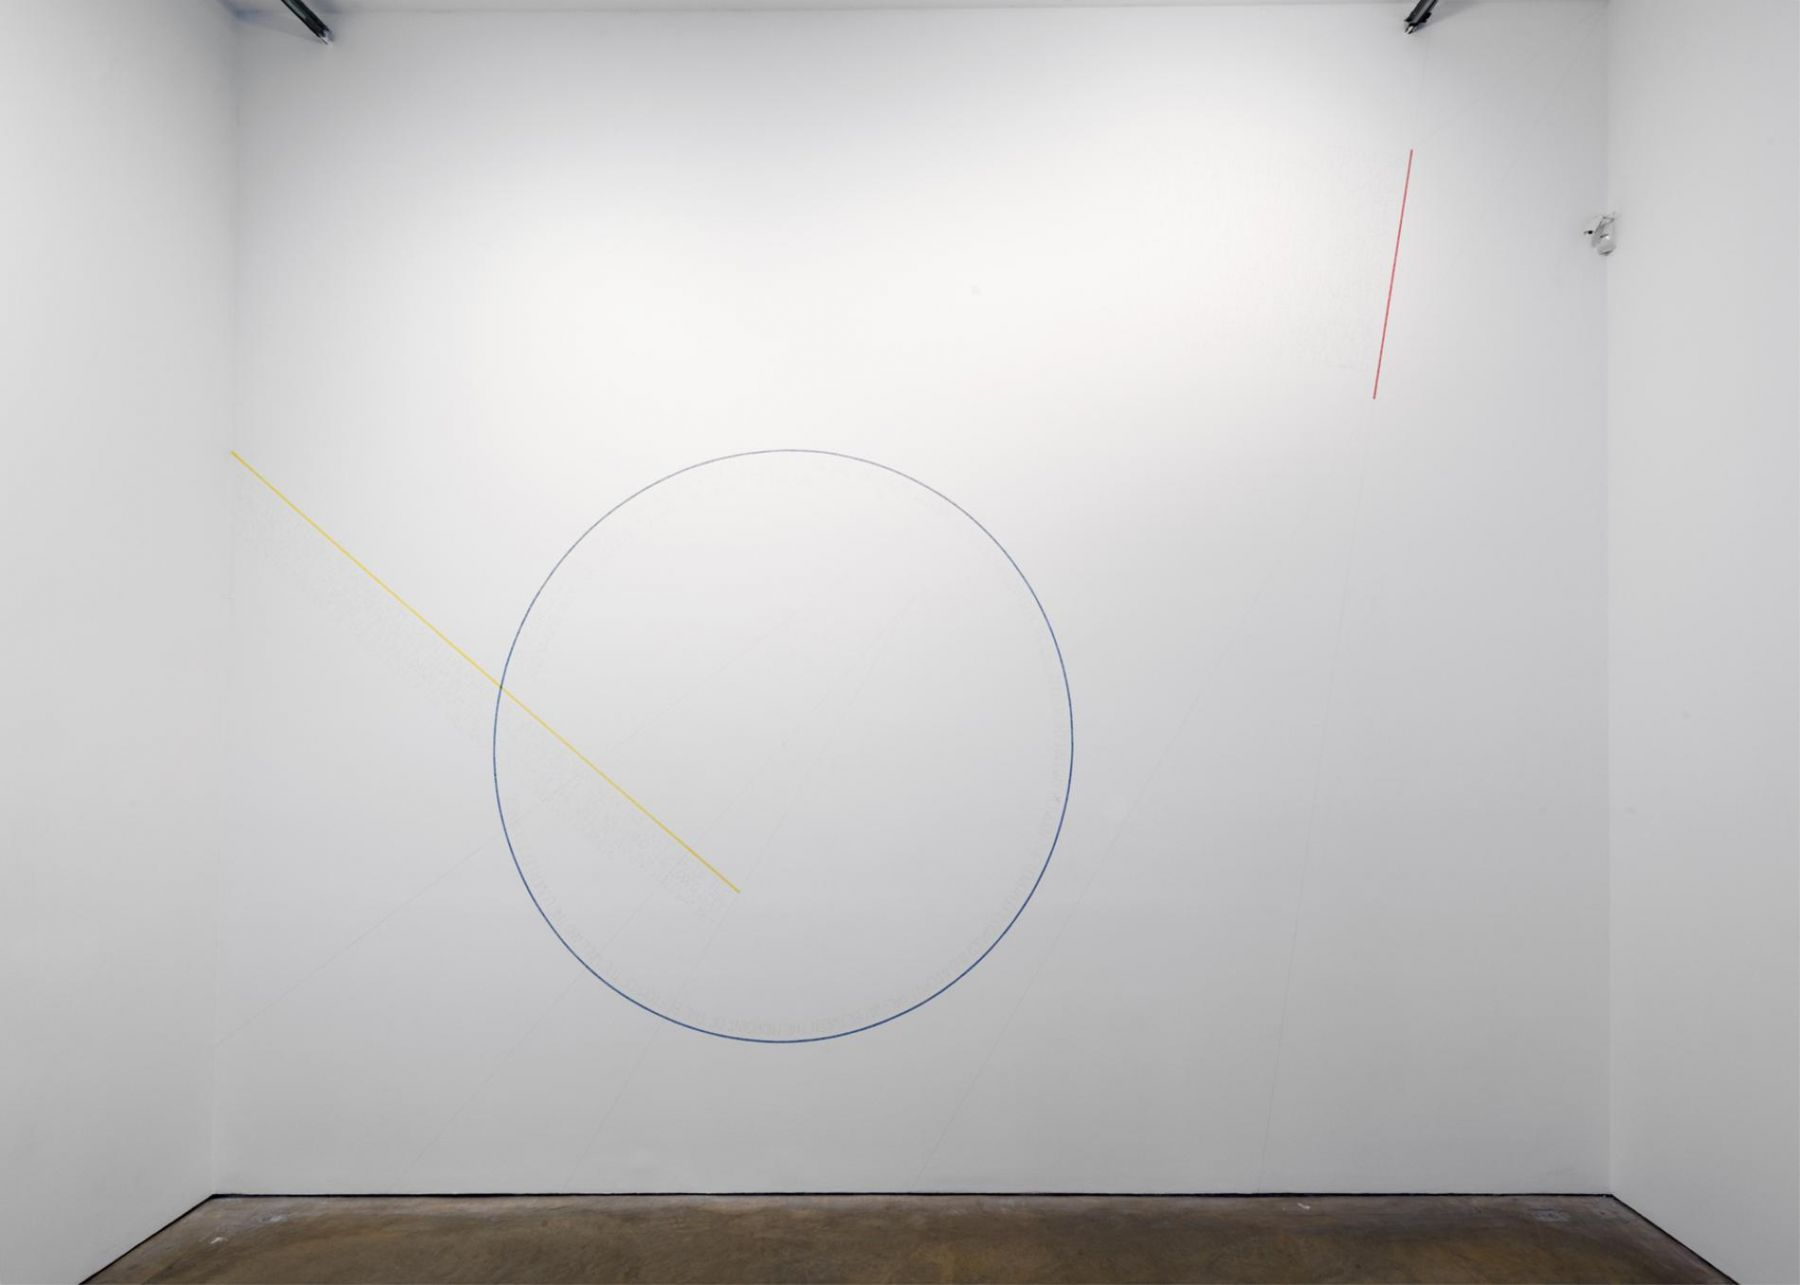 , SOL LEWITT Wall Drawing #283, 1976 Red, yellow, and blue crayon Dimensions variable  Courtesy of the Estate of Sol LeWitt and Paula Cooper Gallery, New York